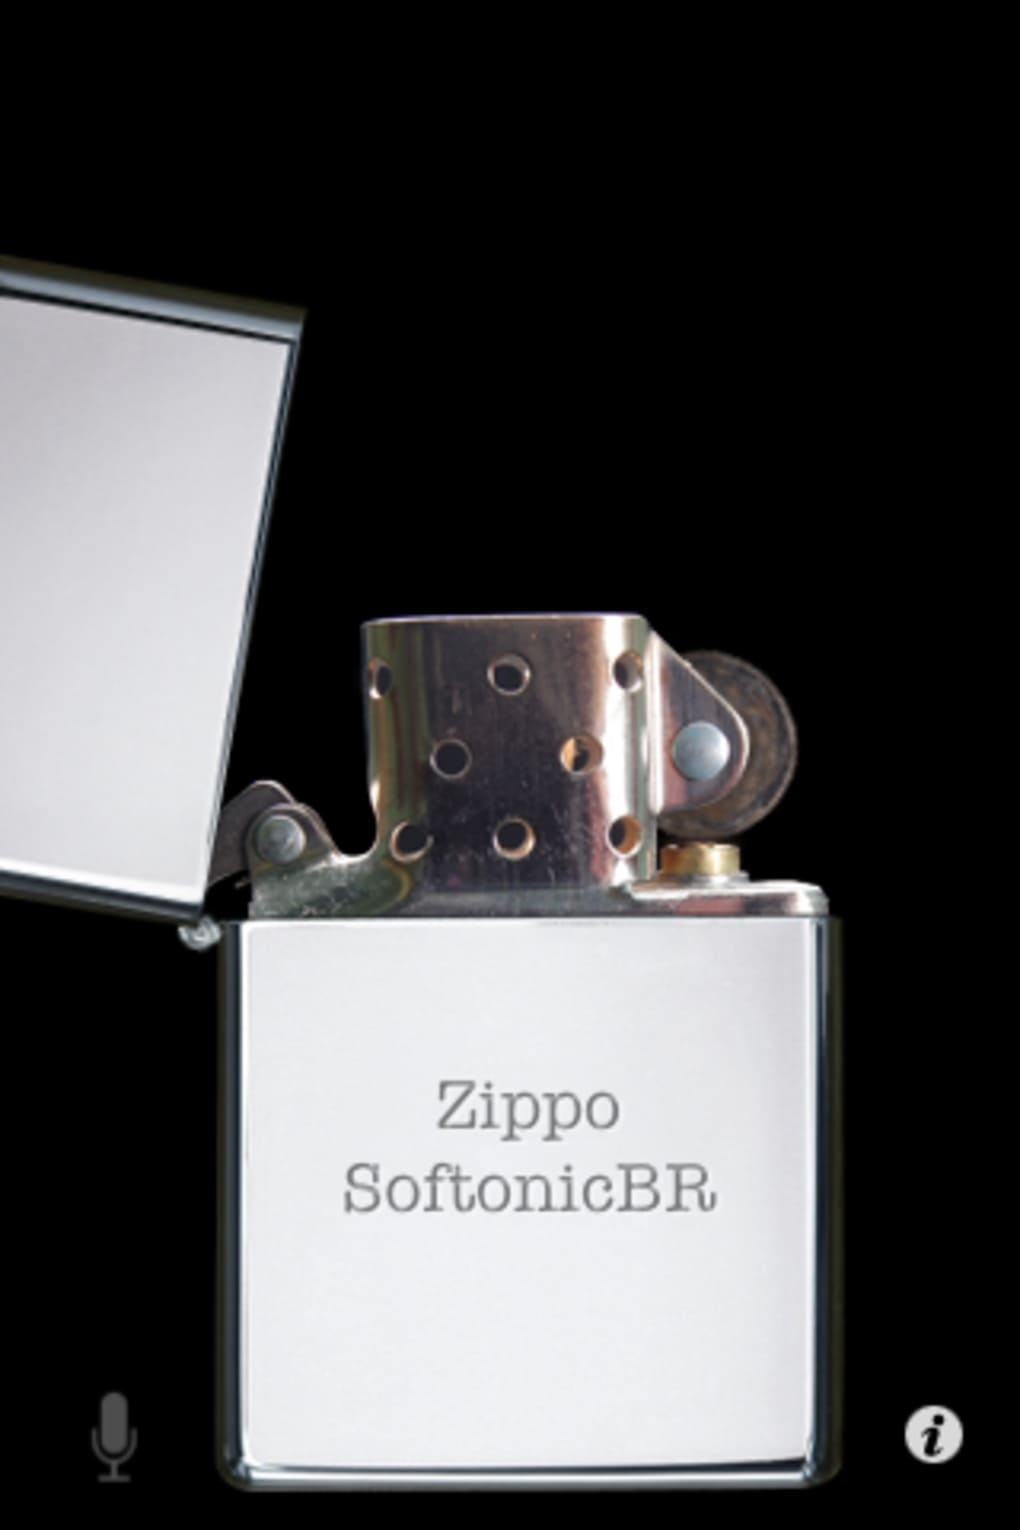 zippo lighter app free download